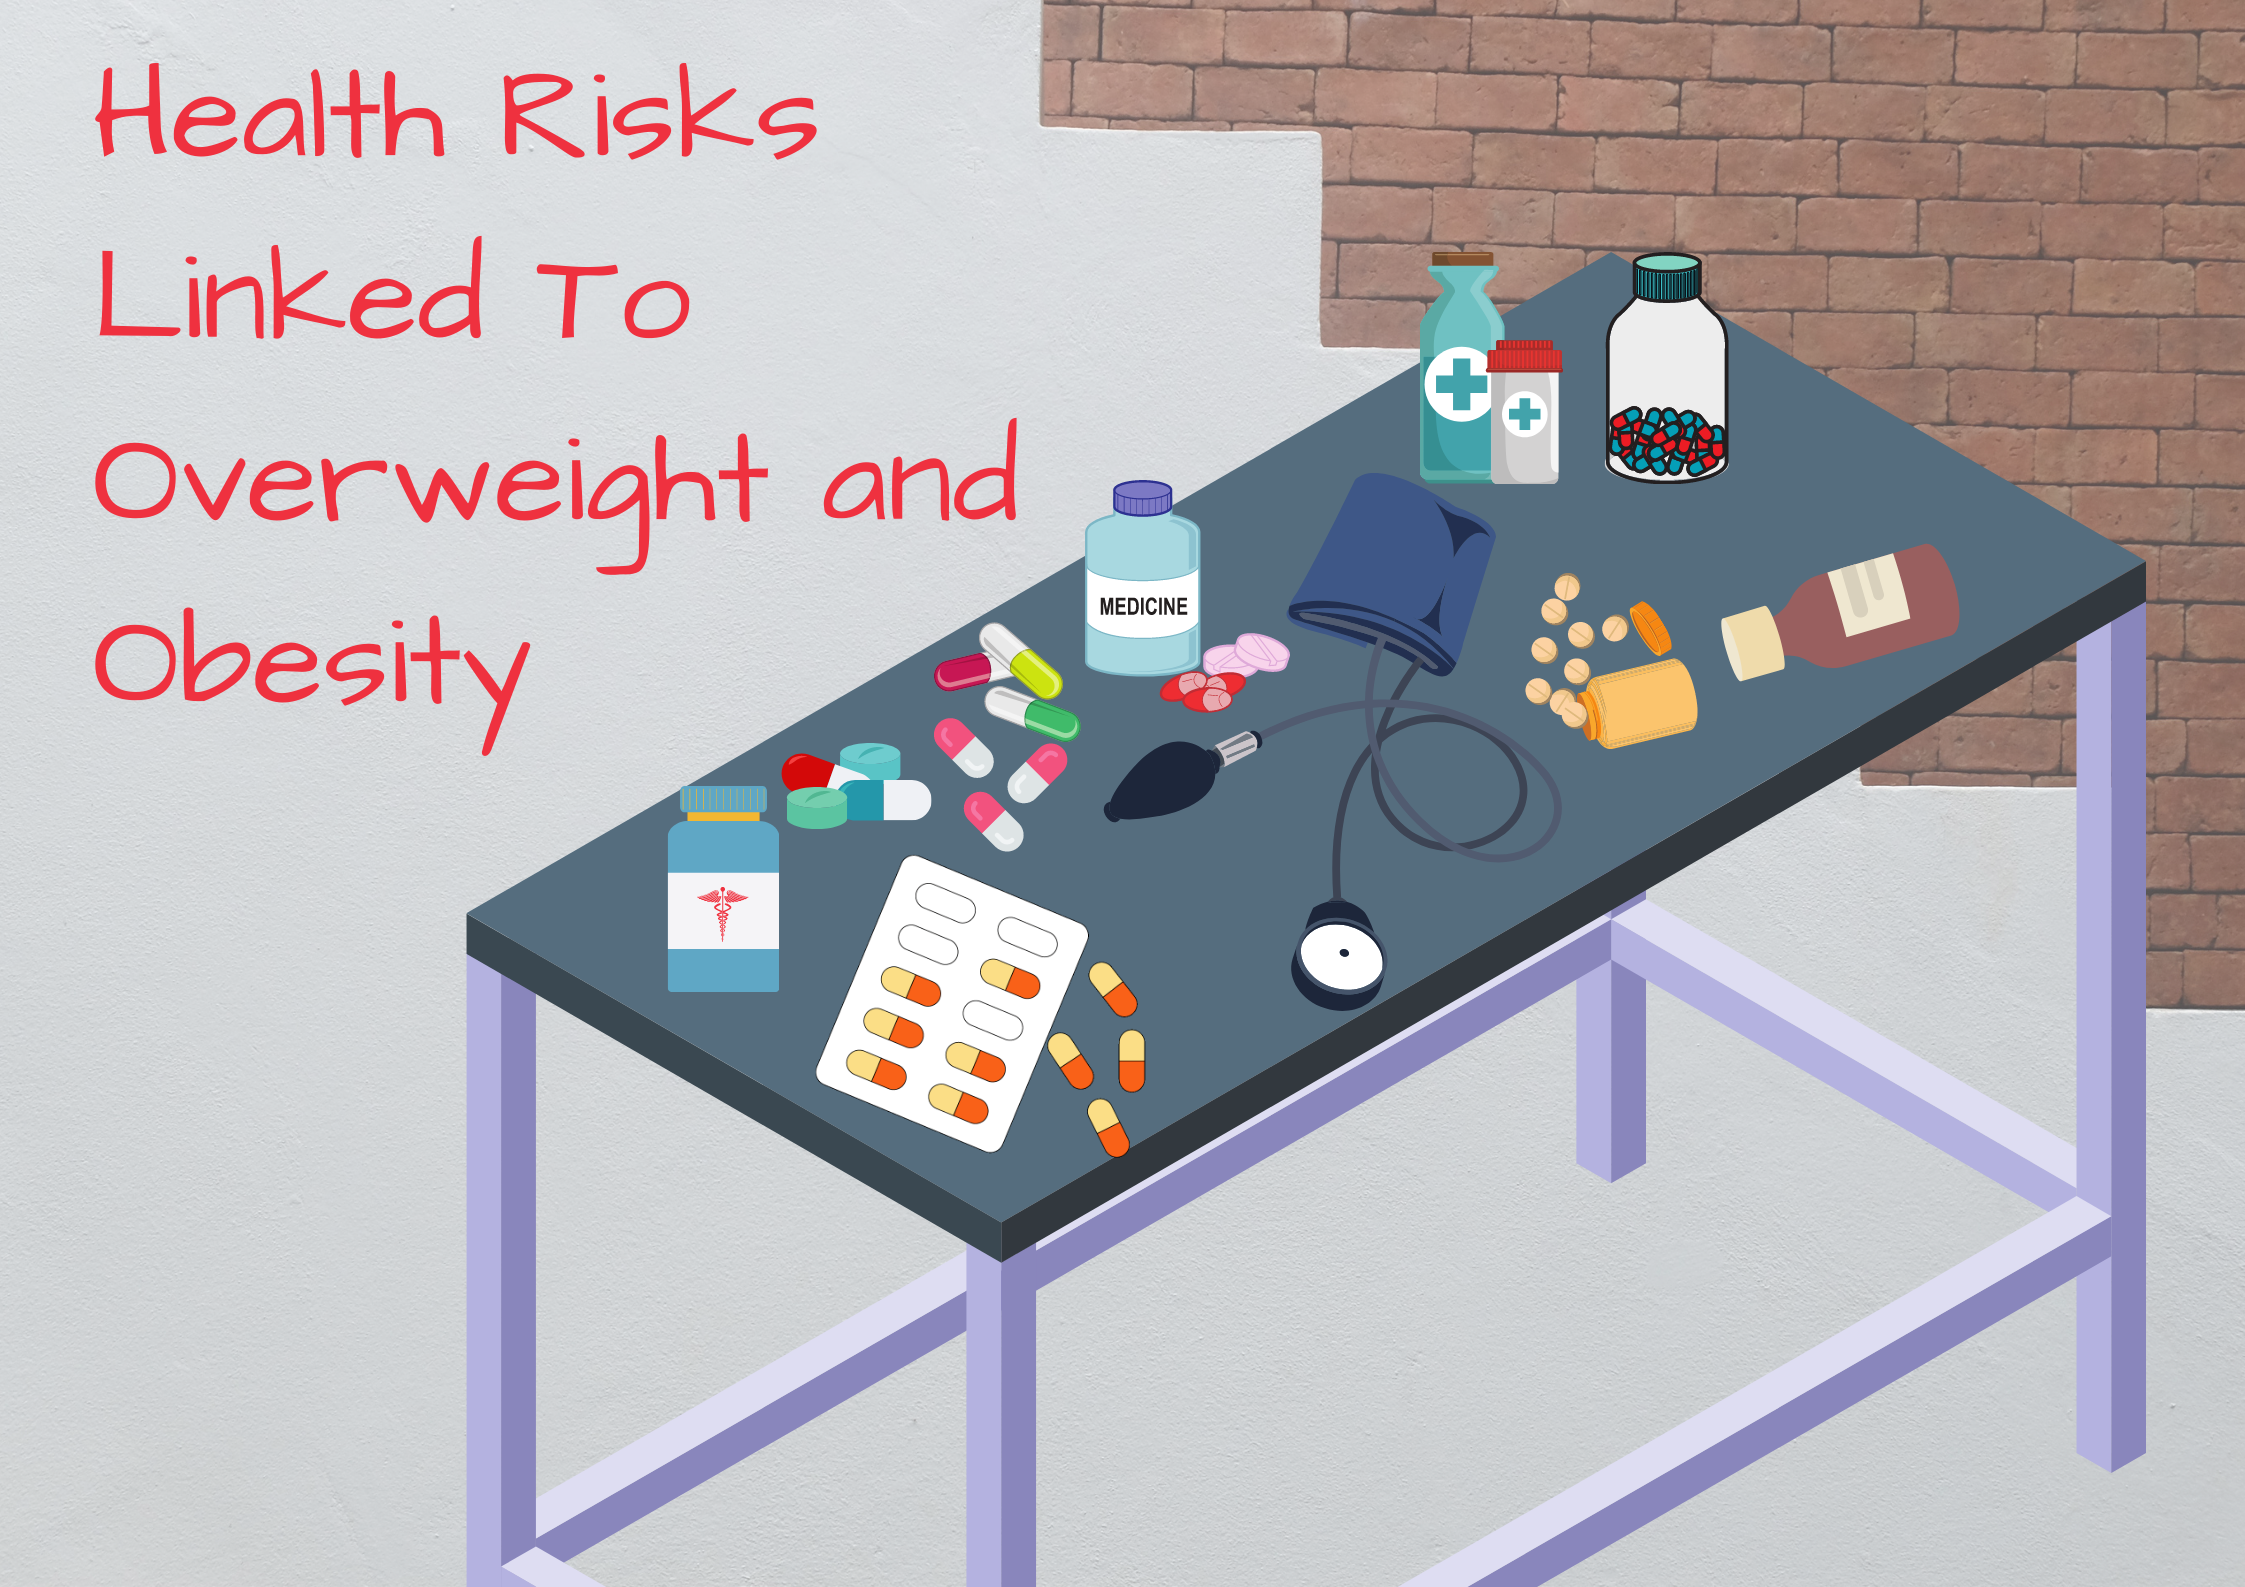 Health-Risks-Linked-To-Overweight-and-Obesity